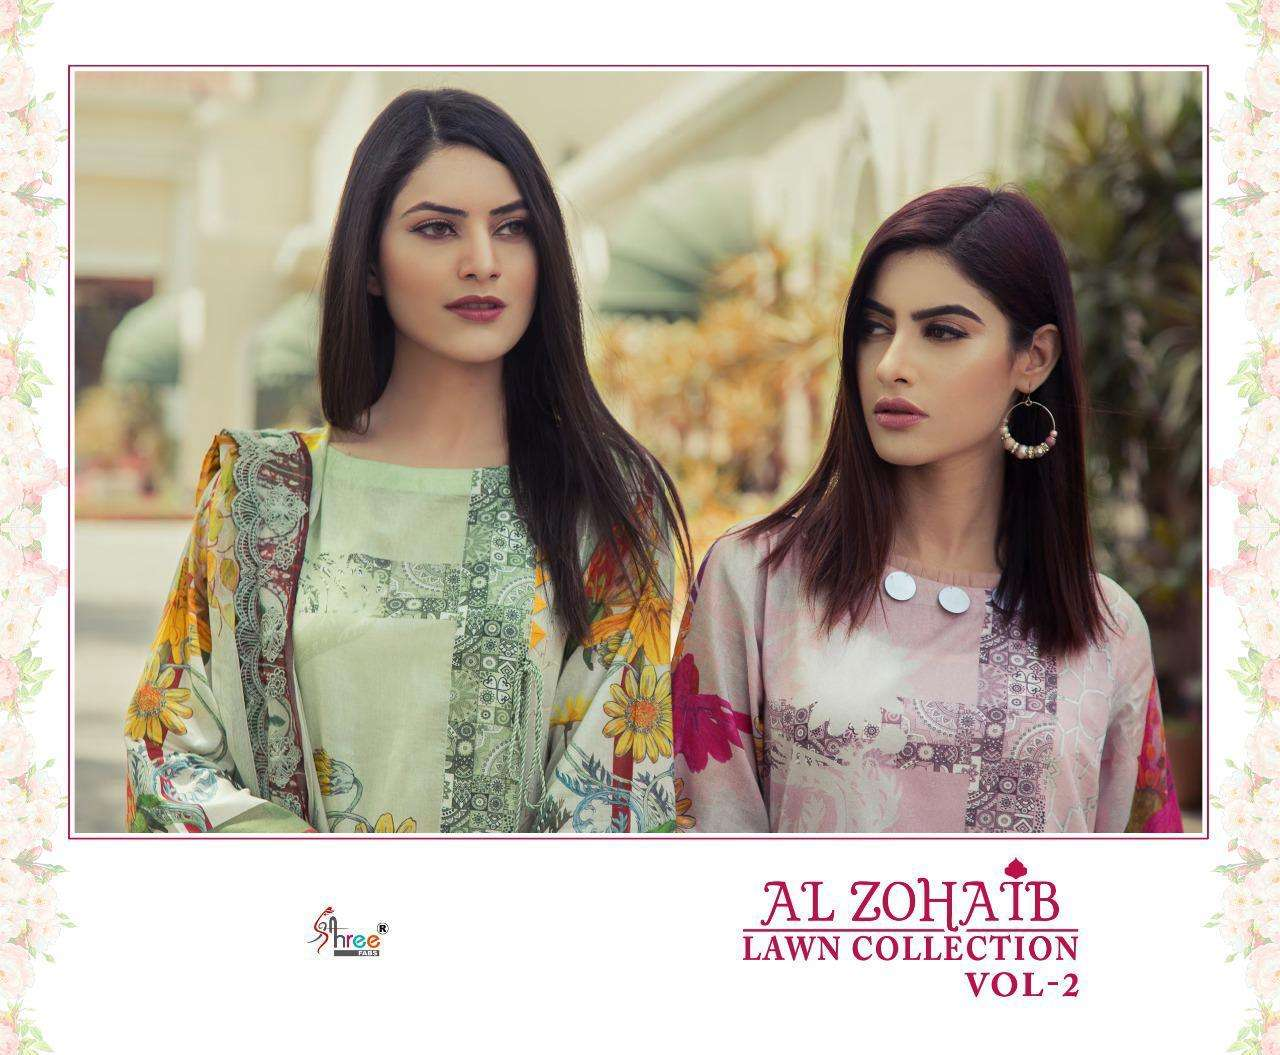 SHREE FAB AL ZOHAIB LAWN COLLECTION VOL 2 DESIGNER COTTON PRINT WITH EMBROIDERY PATCH WORK PAKISTANI REPLICA SUITS WHOLESALE